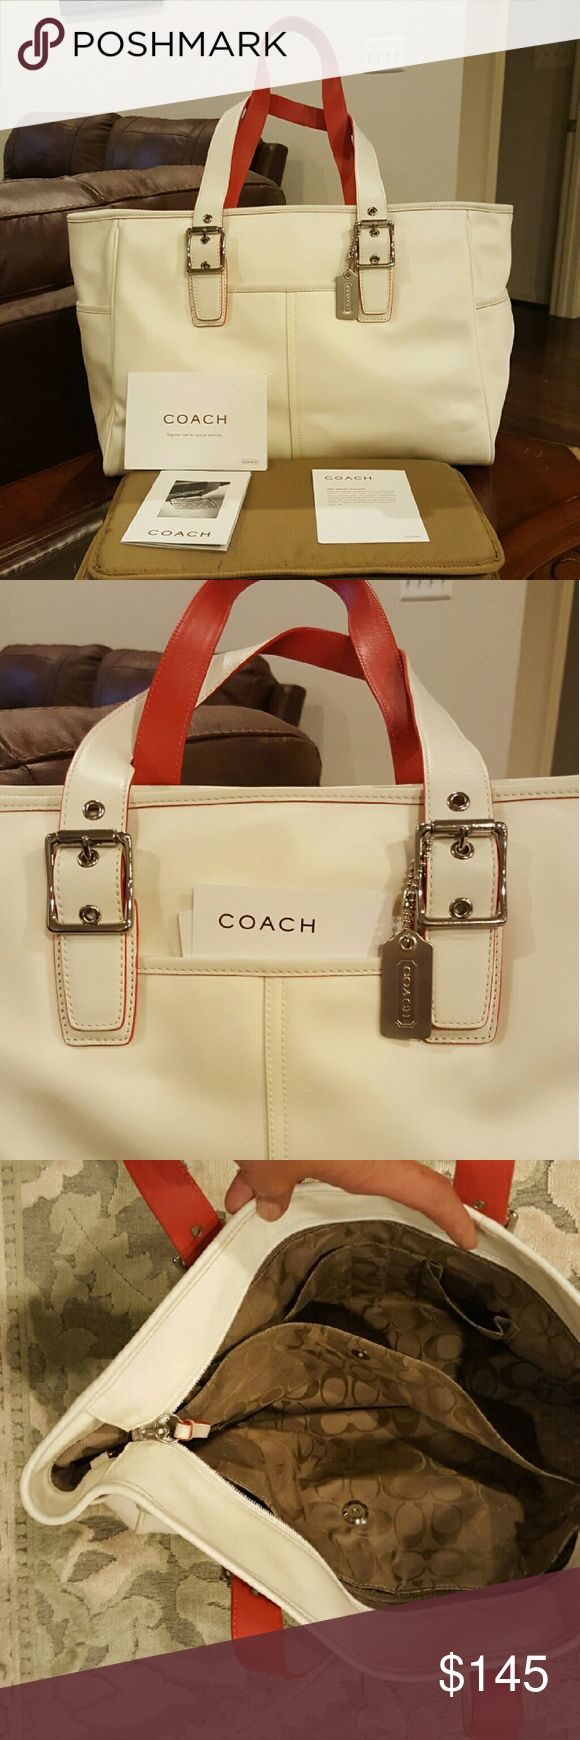 "Coach nylon and leather baby diaper bag zip tote Height (in): 11.5 Width (in): 15"" bottom 19 "" top Lenght  Depth (in): 5 Strap Drop (in): 13  New without tags Red and white Coach diaper bag   Handles are made of leather  Diaper bag is white nylon like canvas There are 2 large zippered pockets and 4 other pockets inside 2 large side pockets on the sides of the bag Includes changing pad, registration card and care card  Only items pictured are included in the listing   Has metal feet on bottom…"